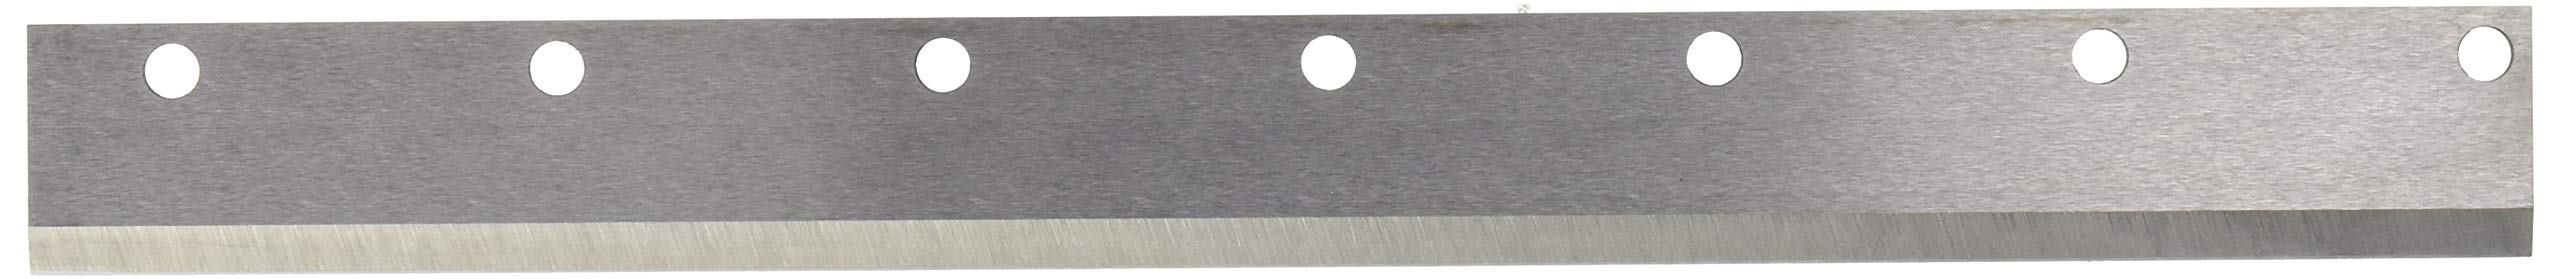 Crain 78-674 Wood Cutter Replacement Blade by CRAIN